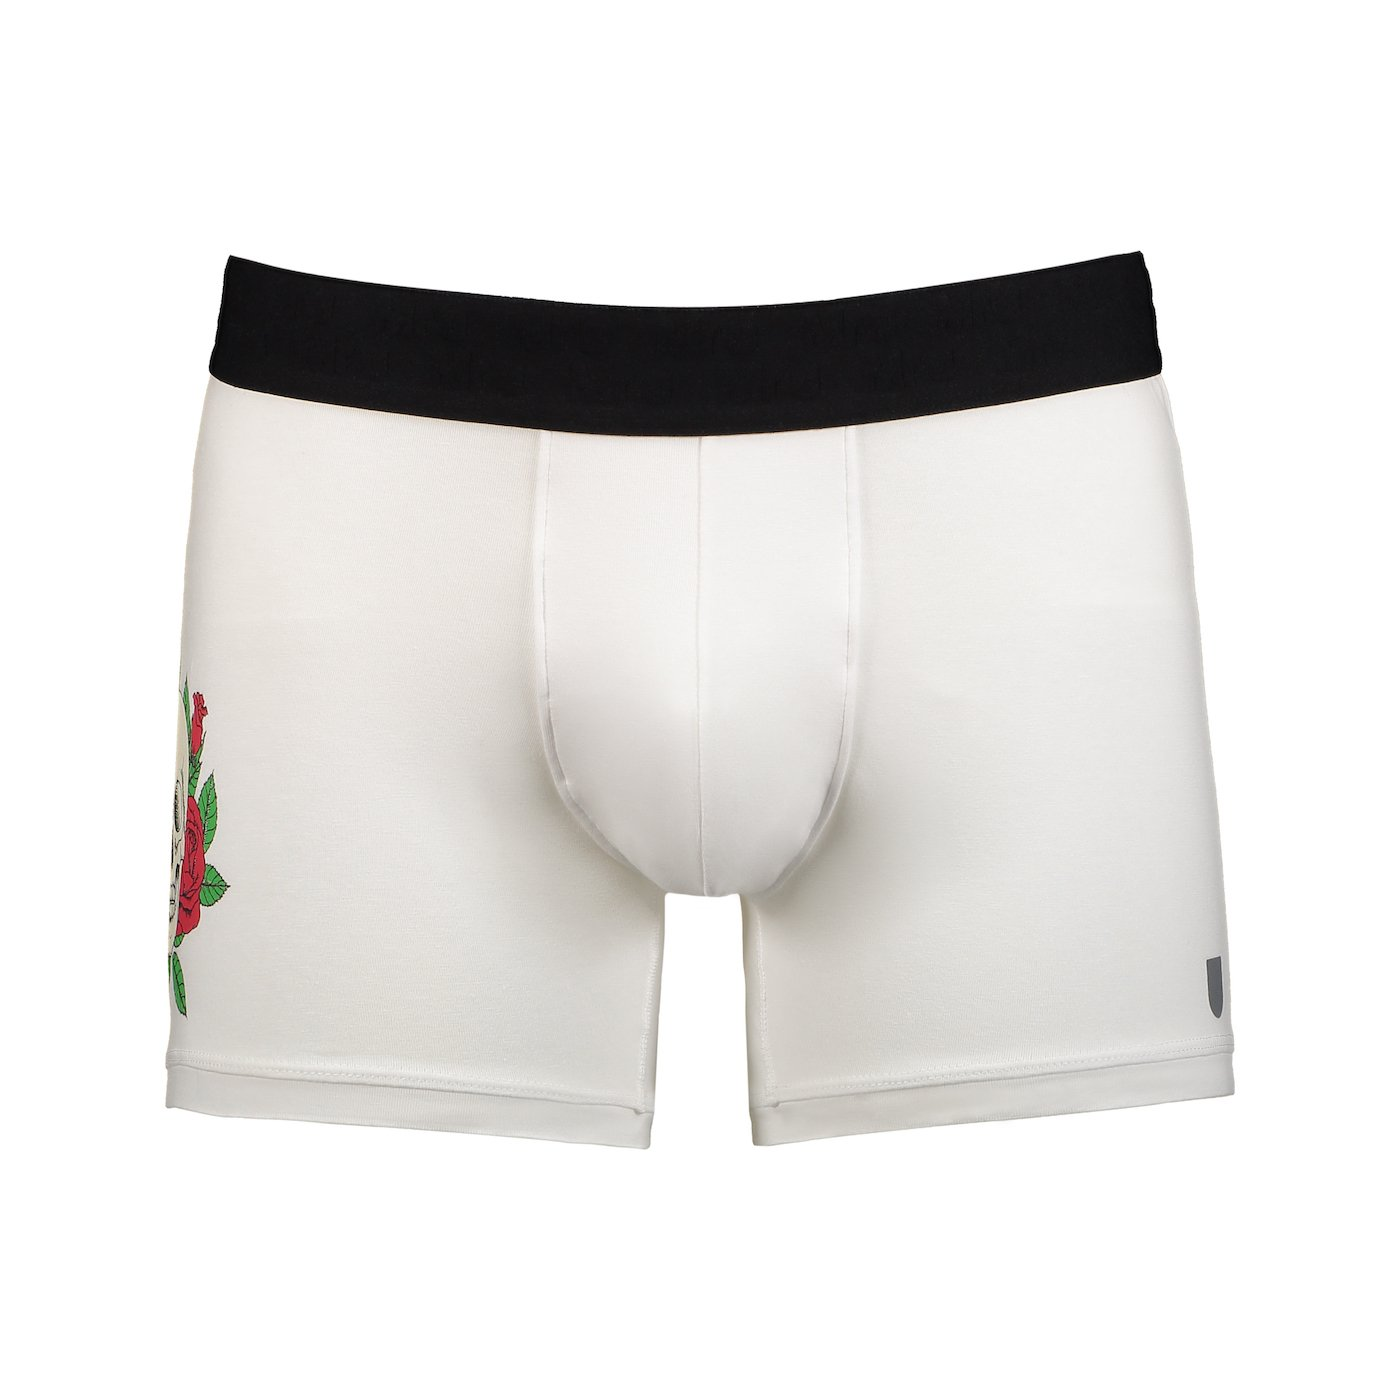 MR.U ROCKER BOXER-BRIEF BLANCO - MRU.MX